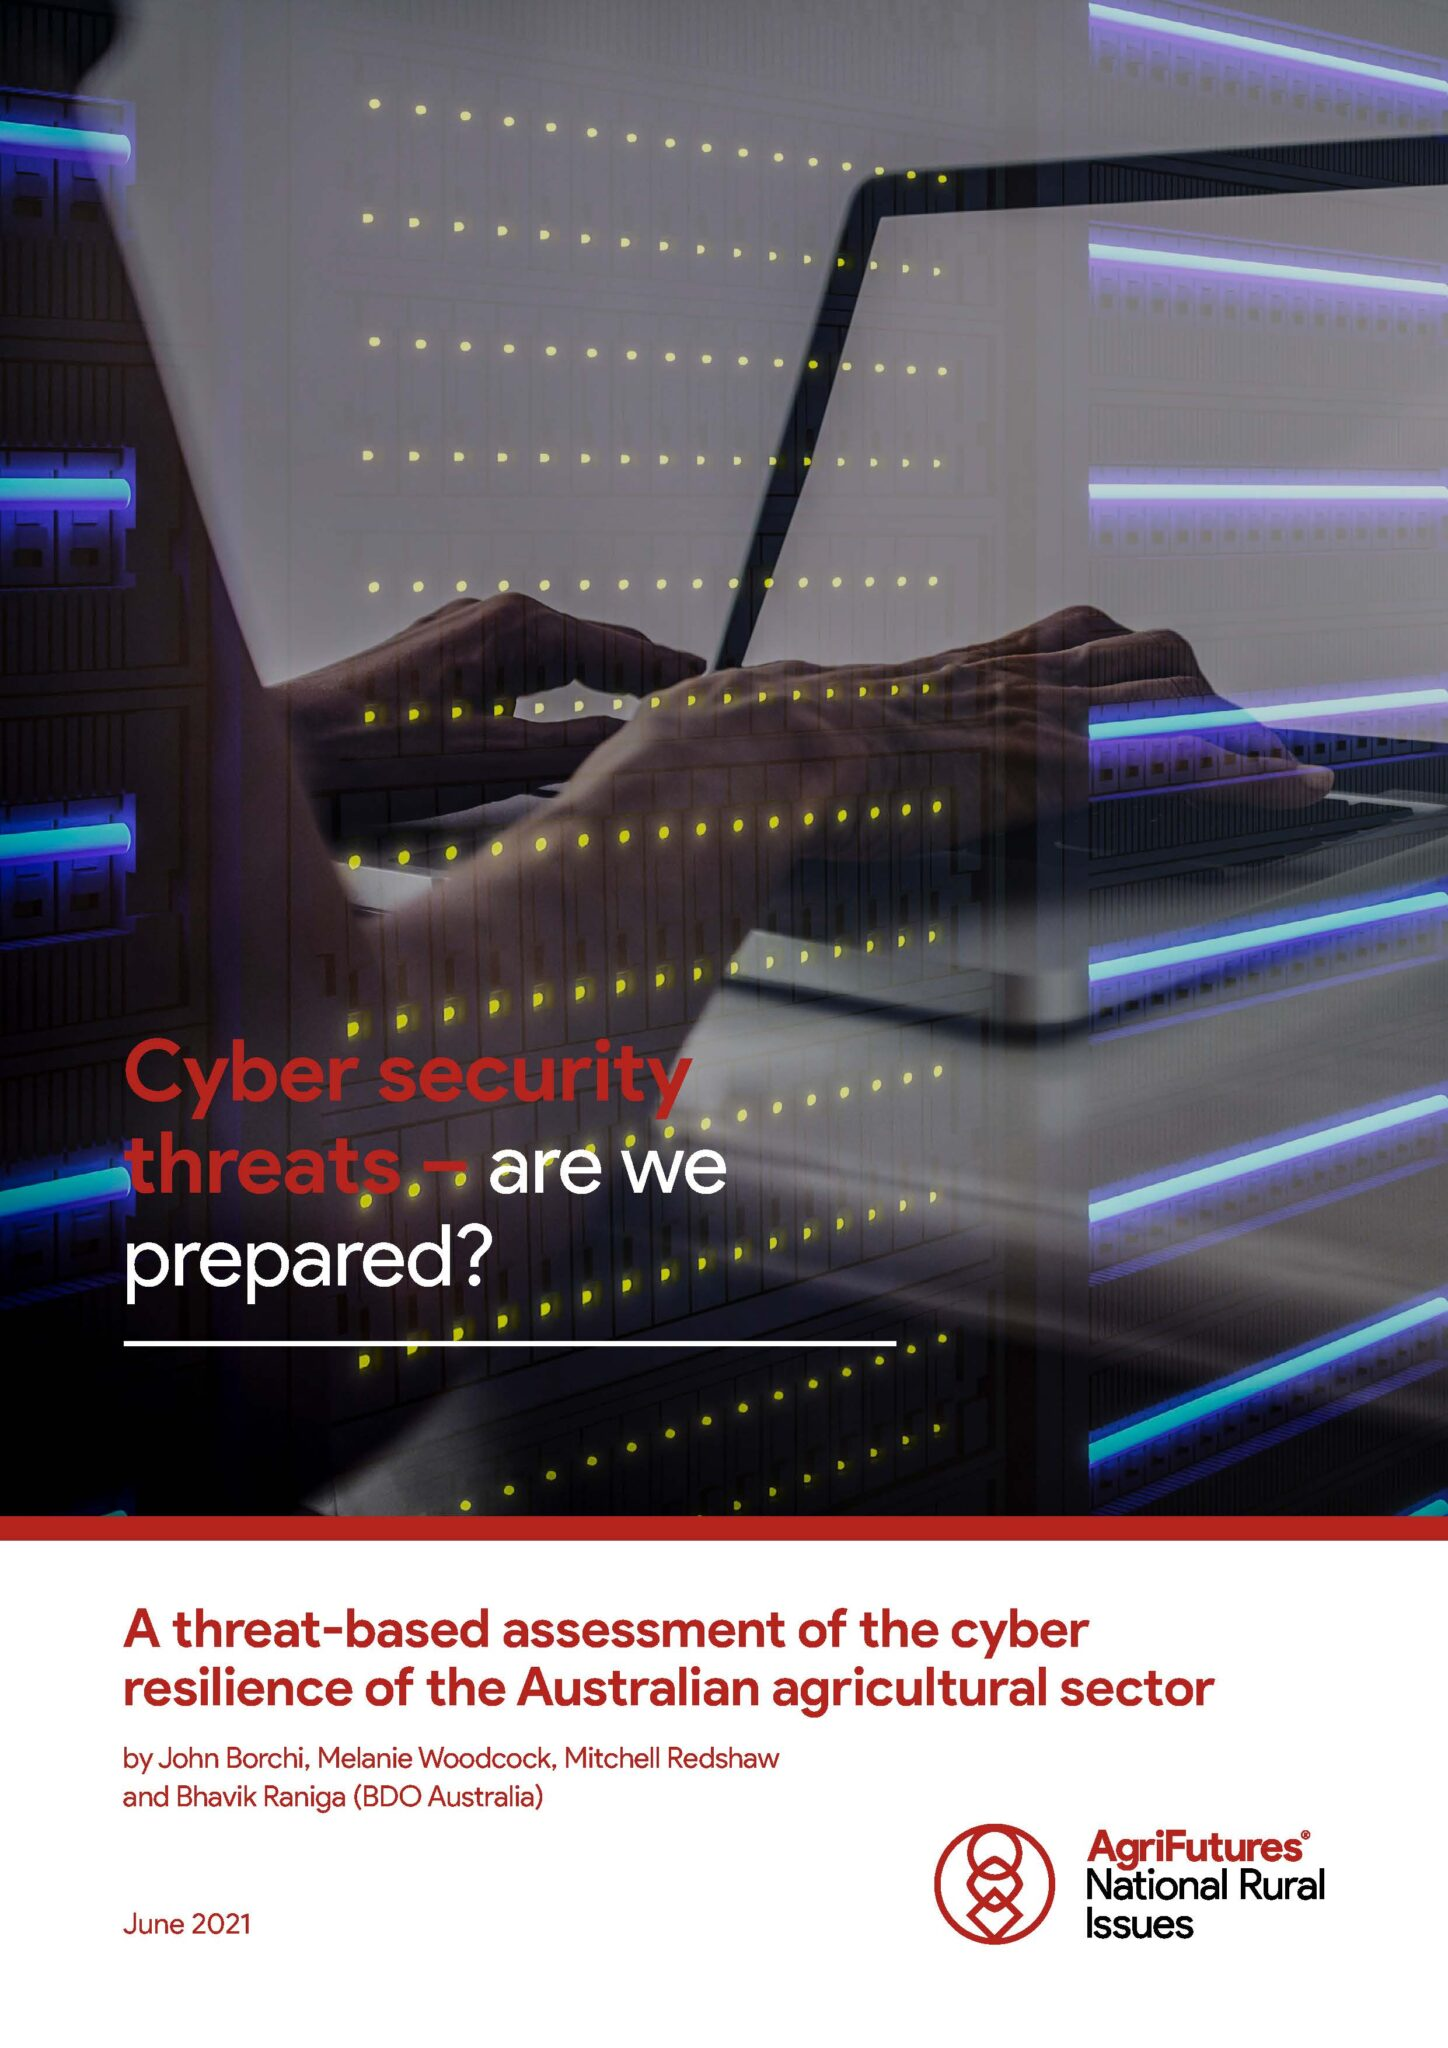 Cyber security threats – are we prepared? A threat-based assessment of the cyber resilience of the Australian agricultural sector - image